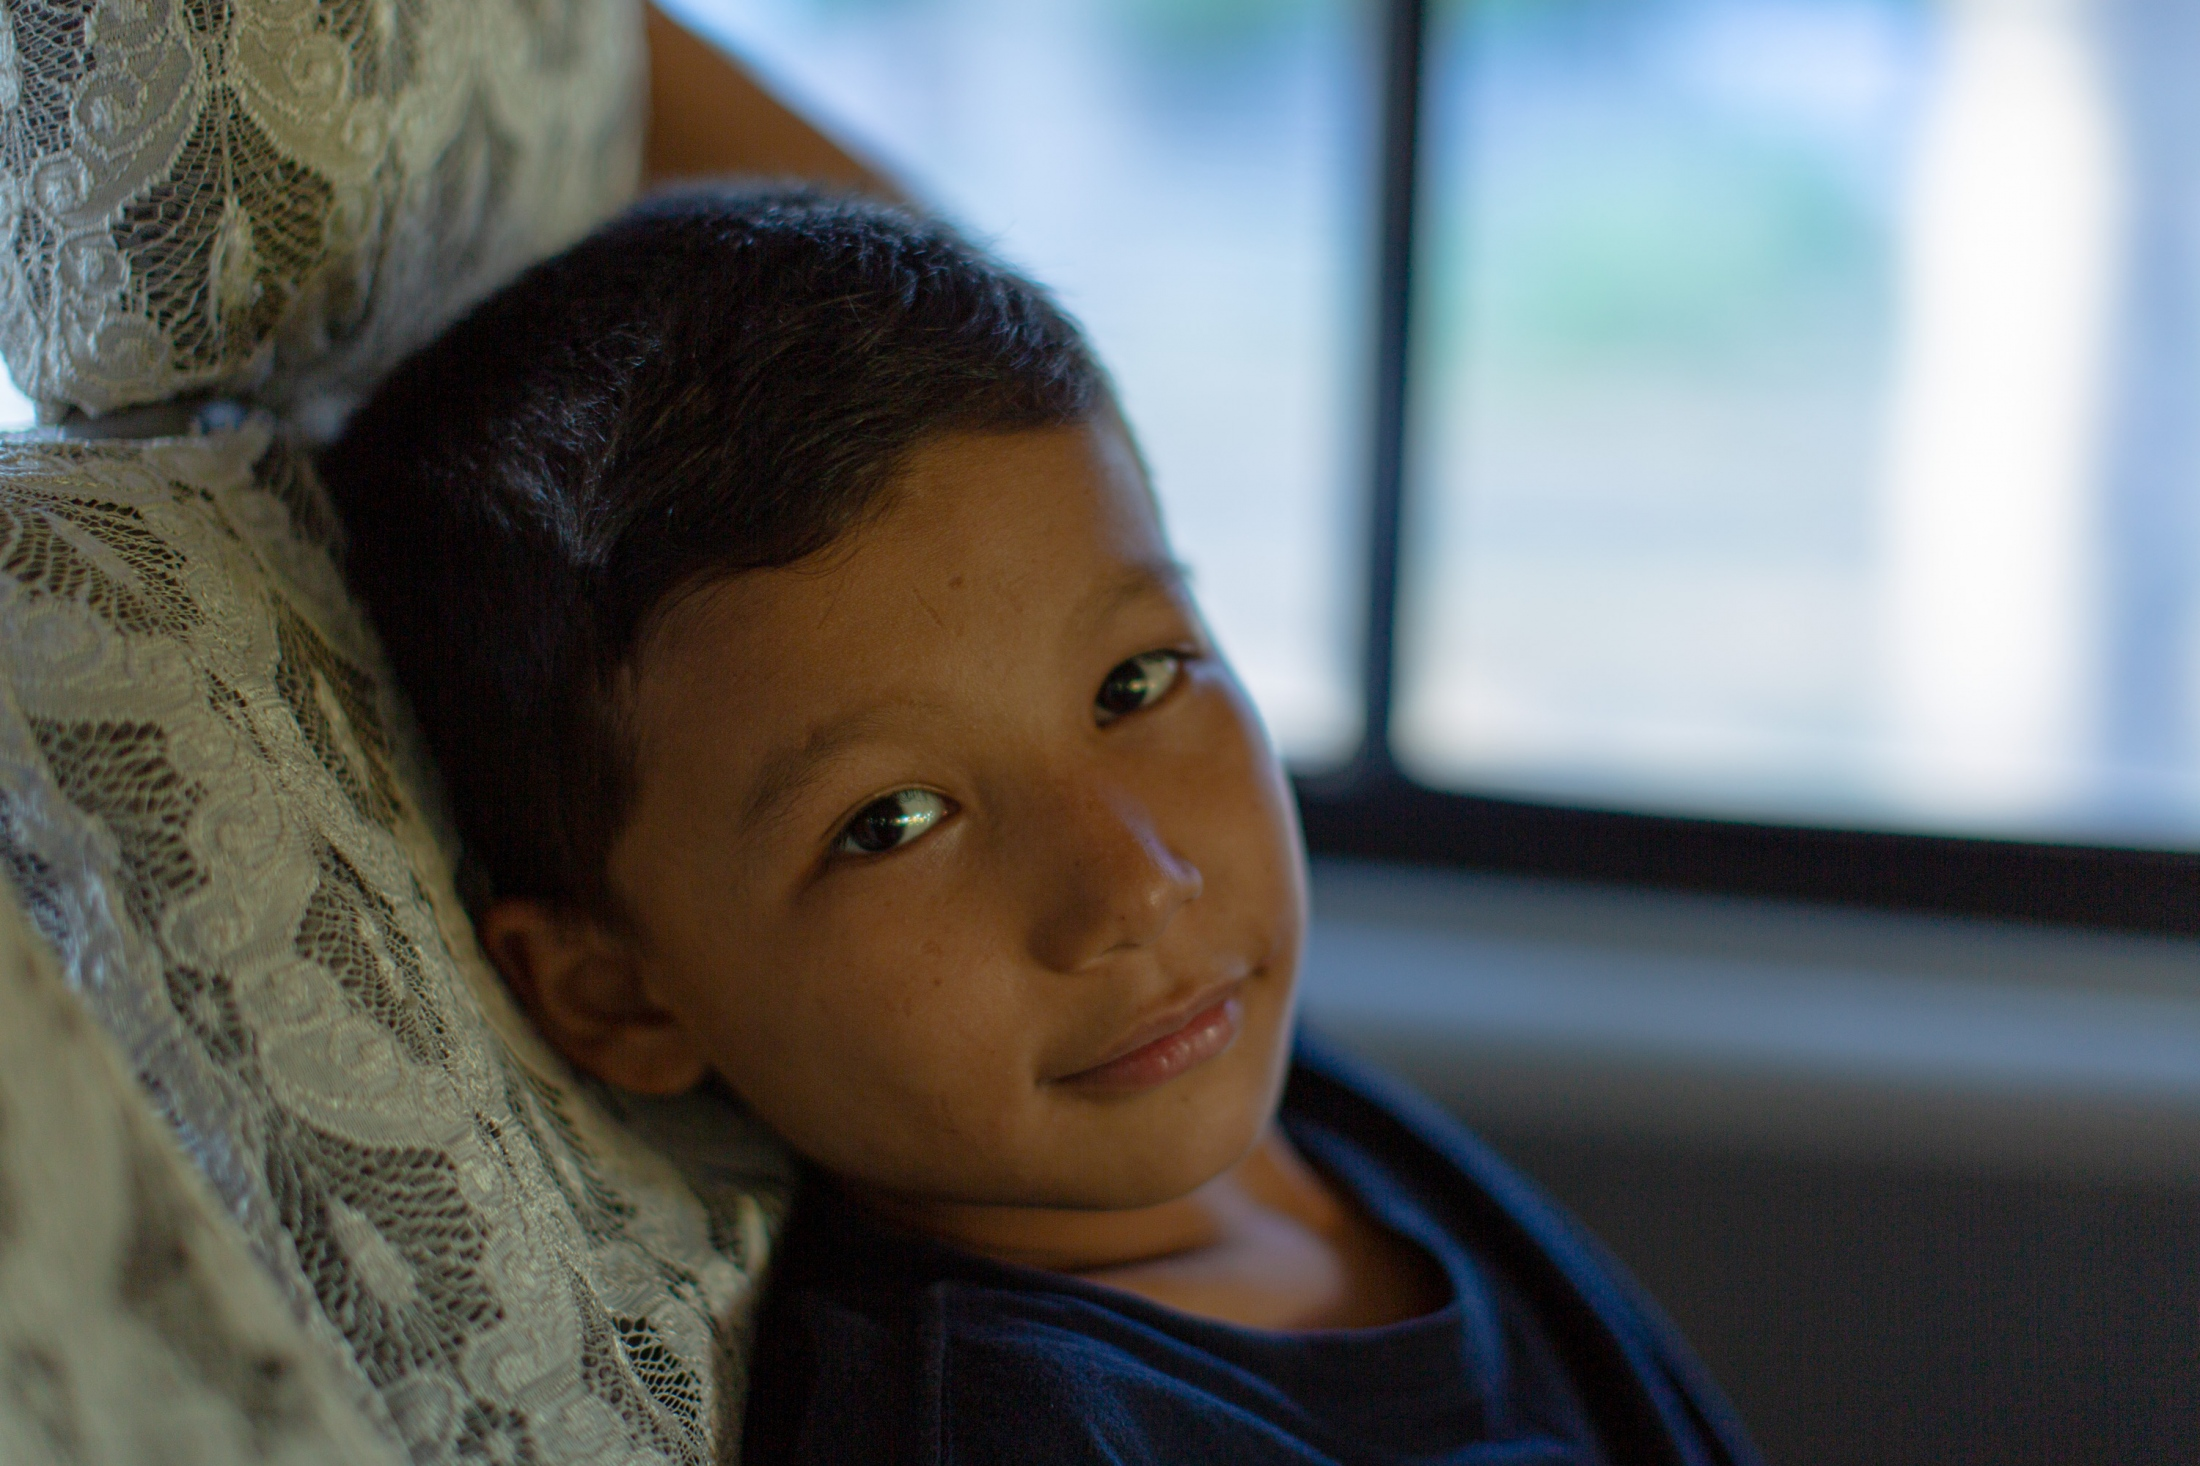 Ali Ahmadi, 11, on the last leg of a journey to a safe house in Jaffna, that saw his family stopped 18 times at army checkpoints and... (May, 2019)